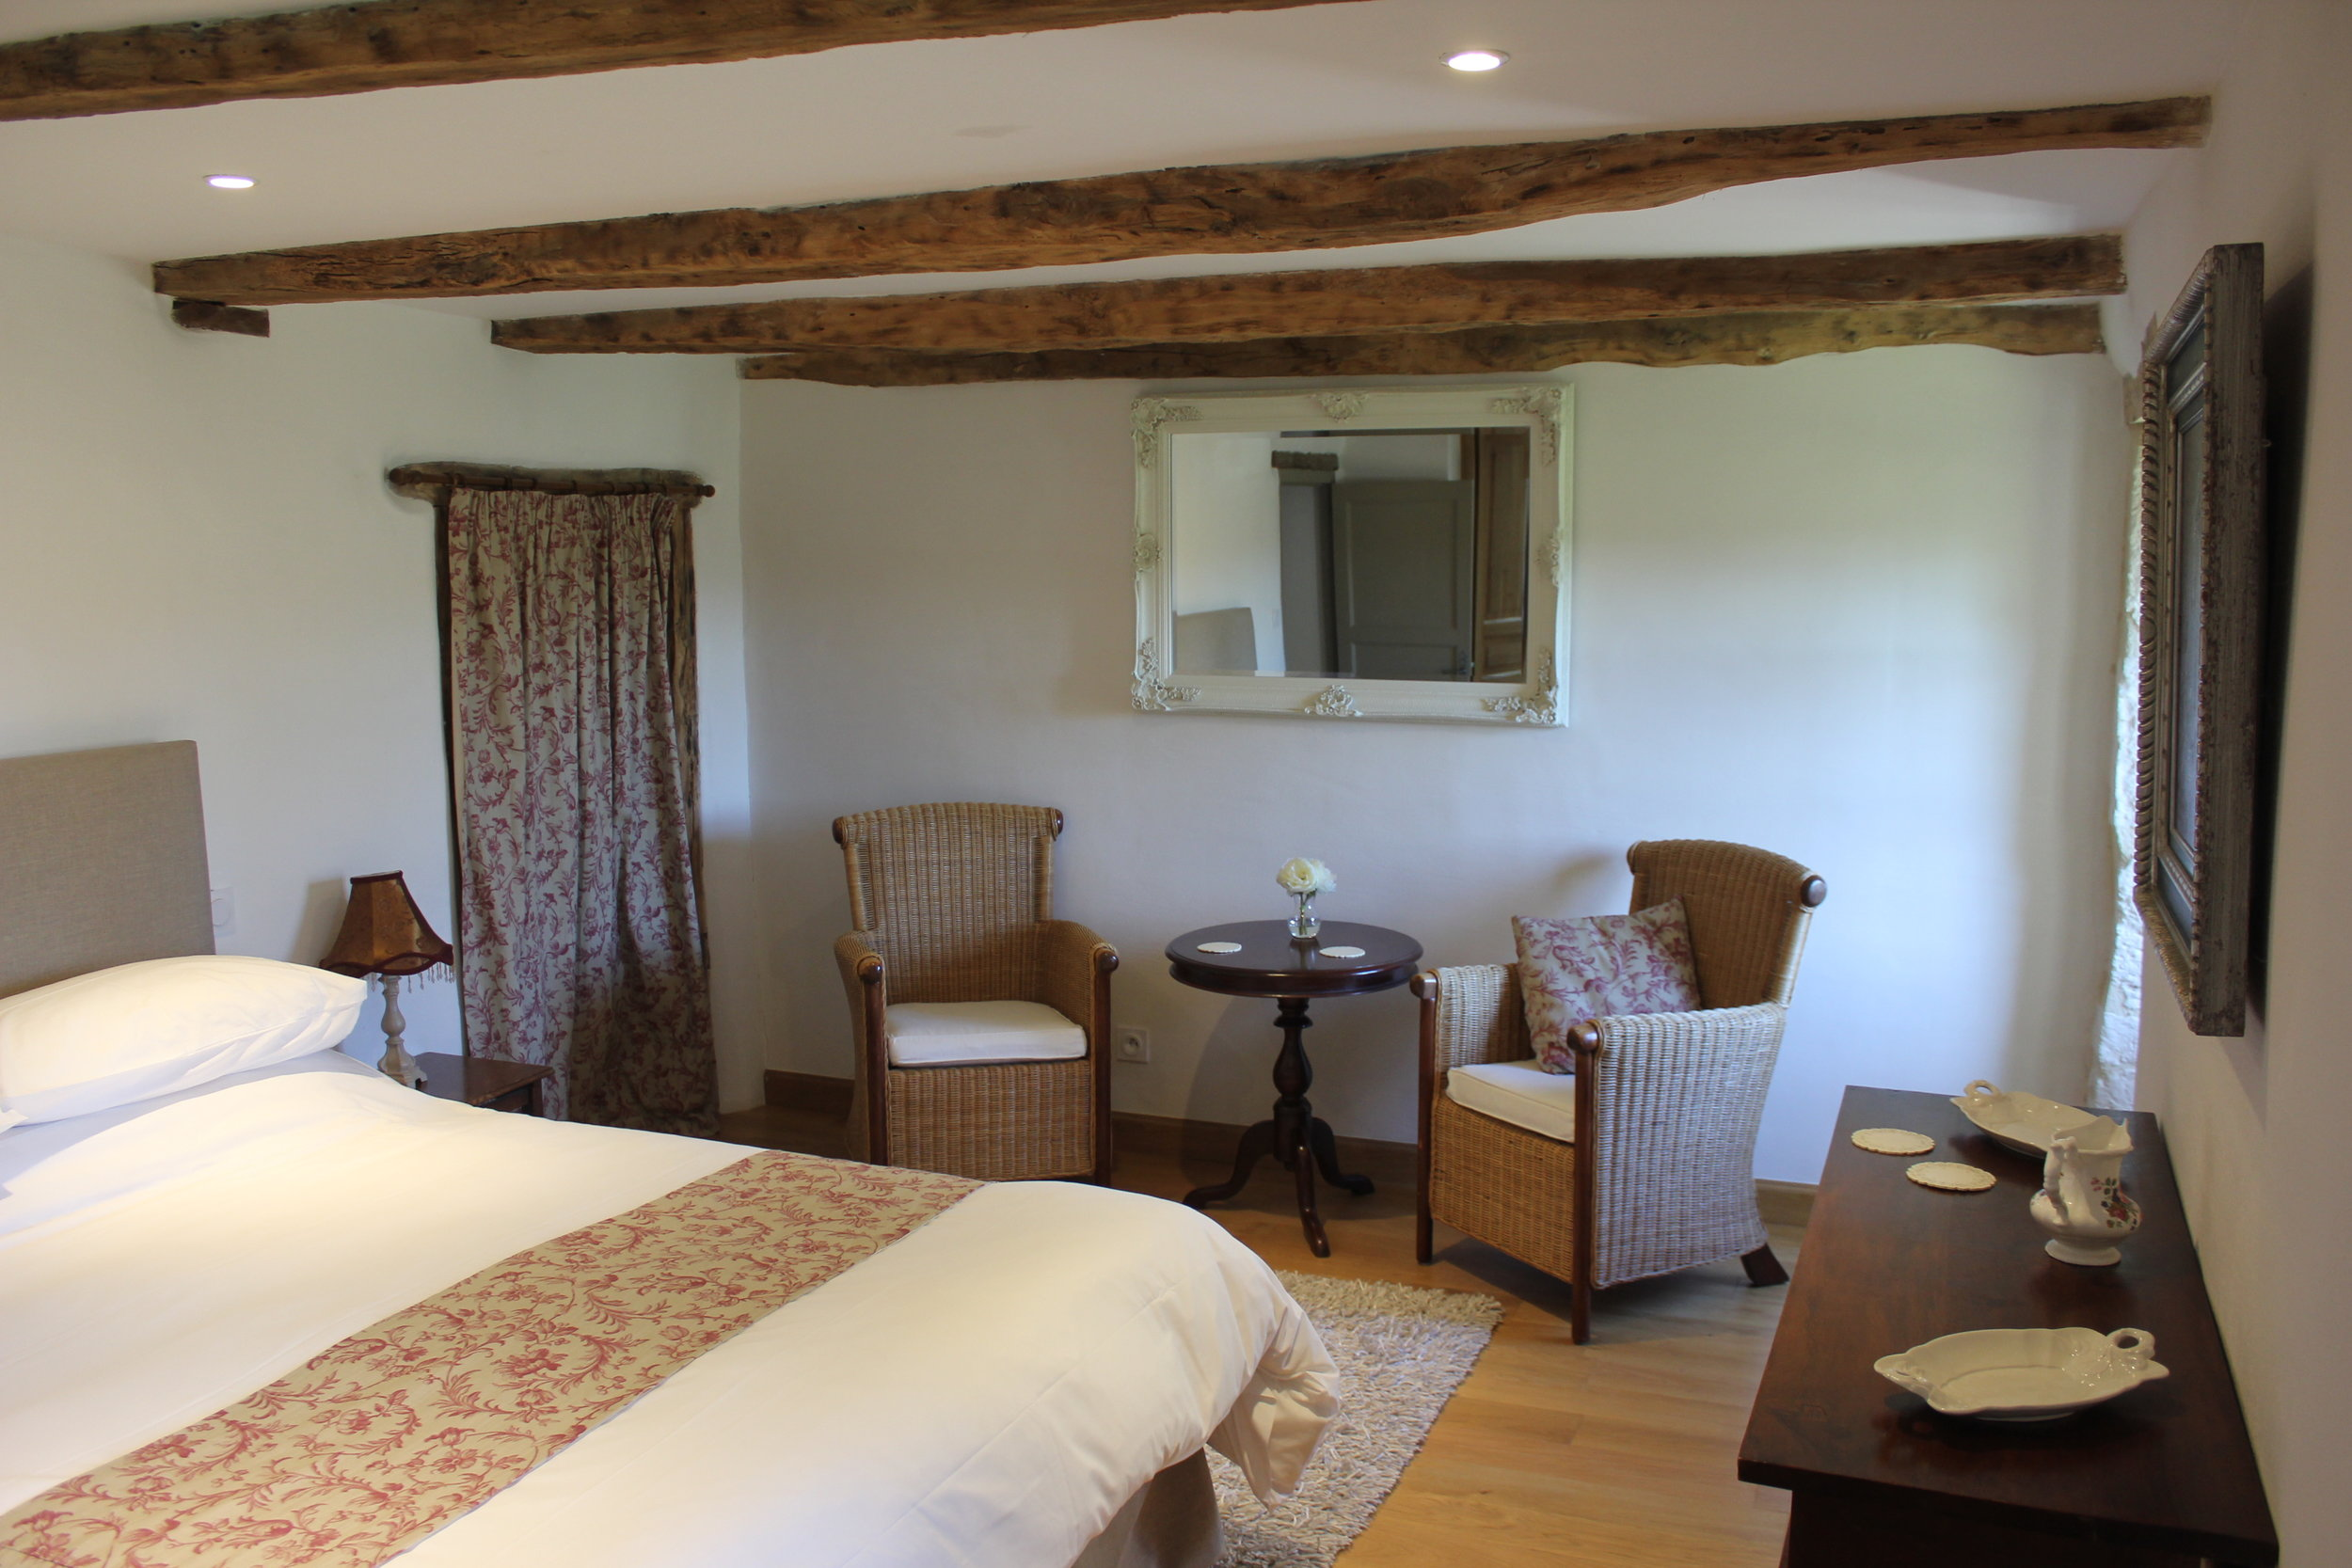 Tournon bedroom. Guests coming to stay…. worth a photo!